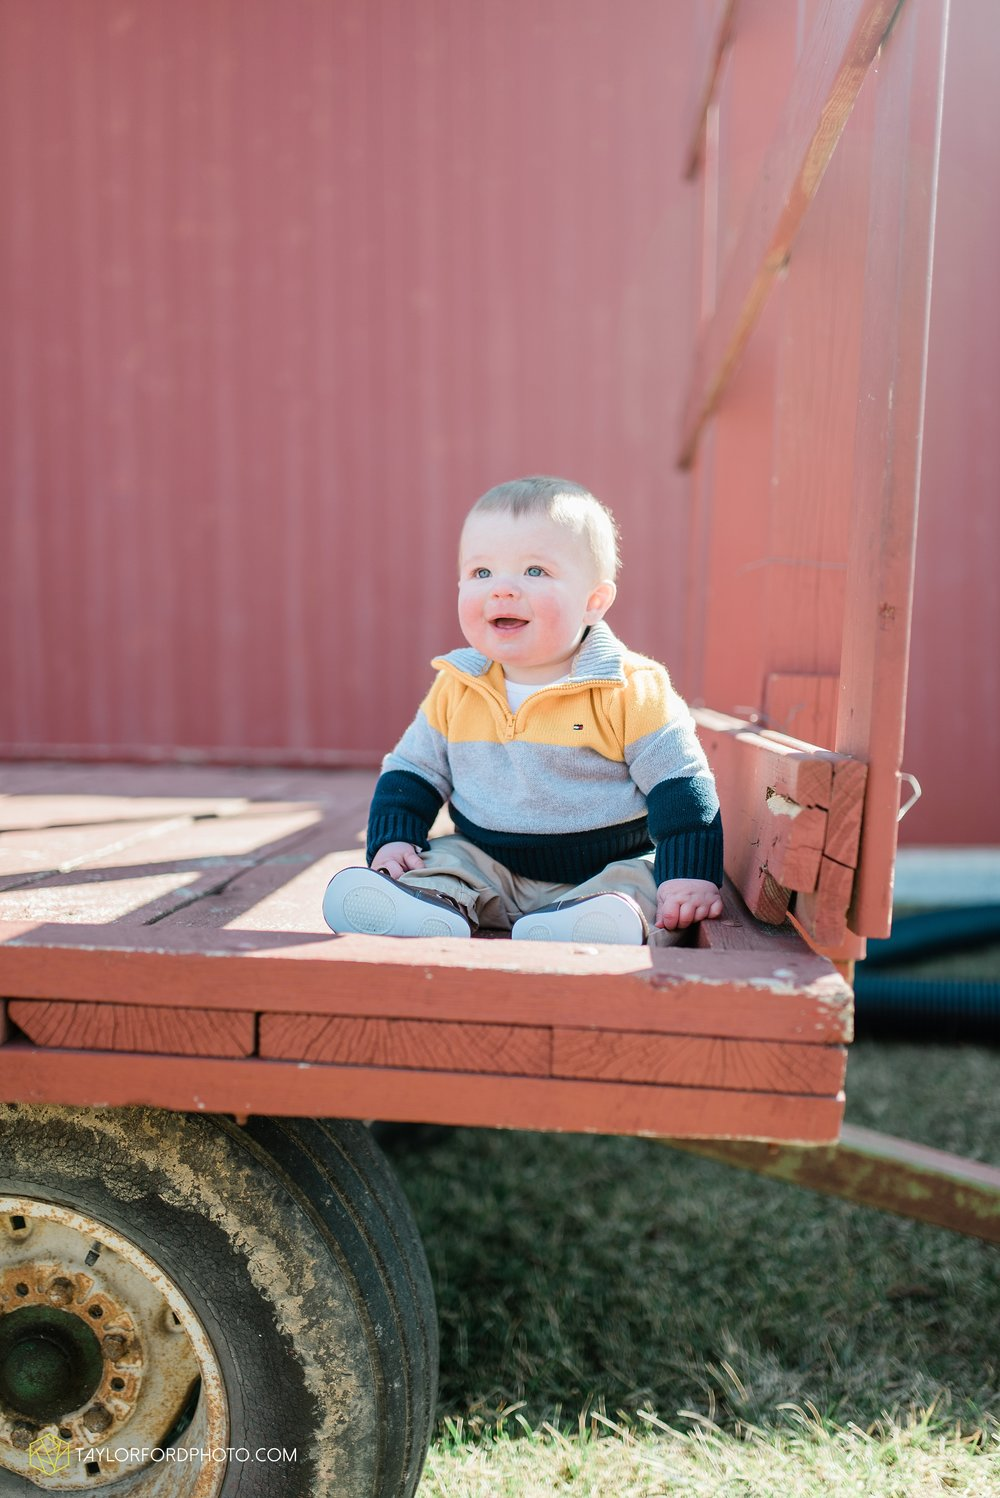 fort-wayne-indiana-child-photographer-6-months-solomon-farm-park-Taylor-Ford-Photography_6505.jpg